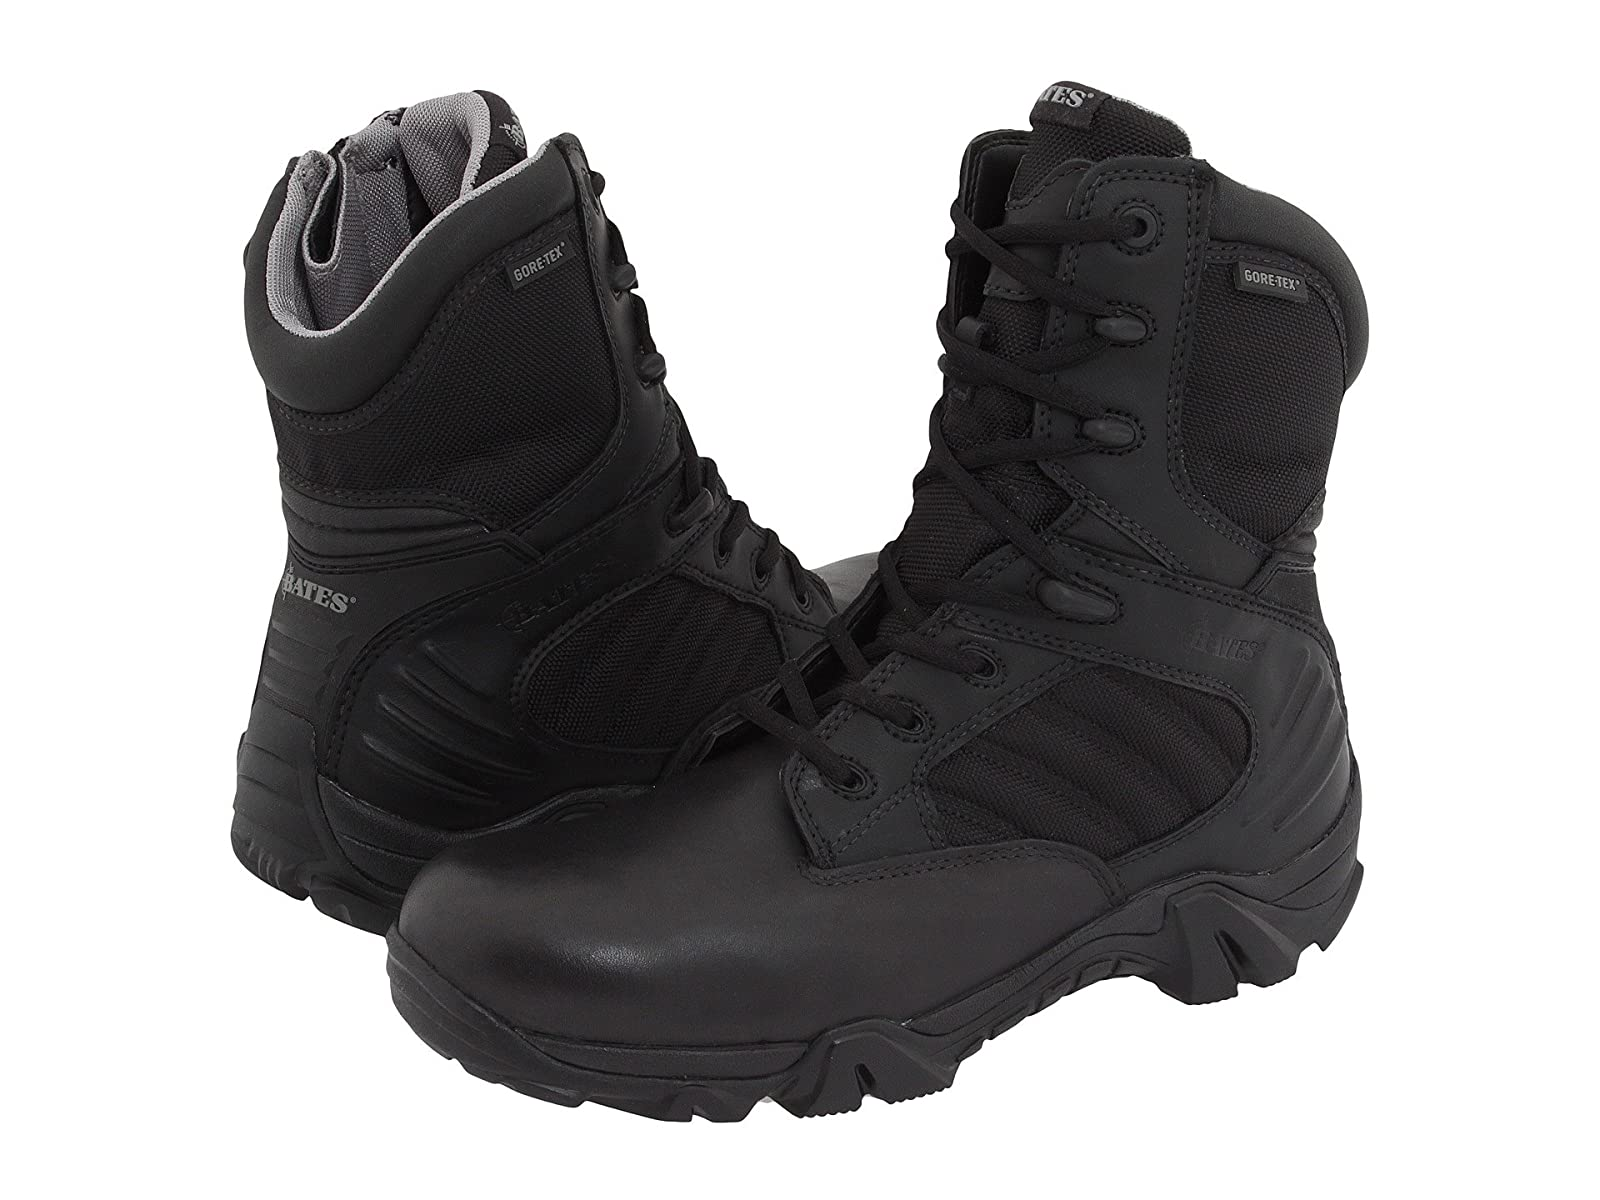 Bates Footwear GX-8 GORE-TEX® Side-ZipSelling fashionable and eye-catching shoes